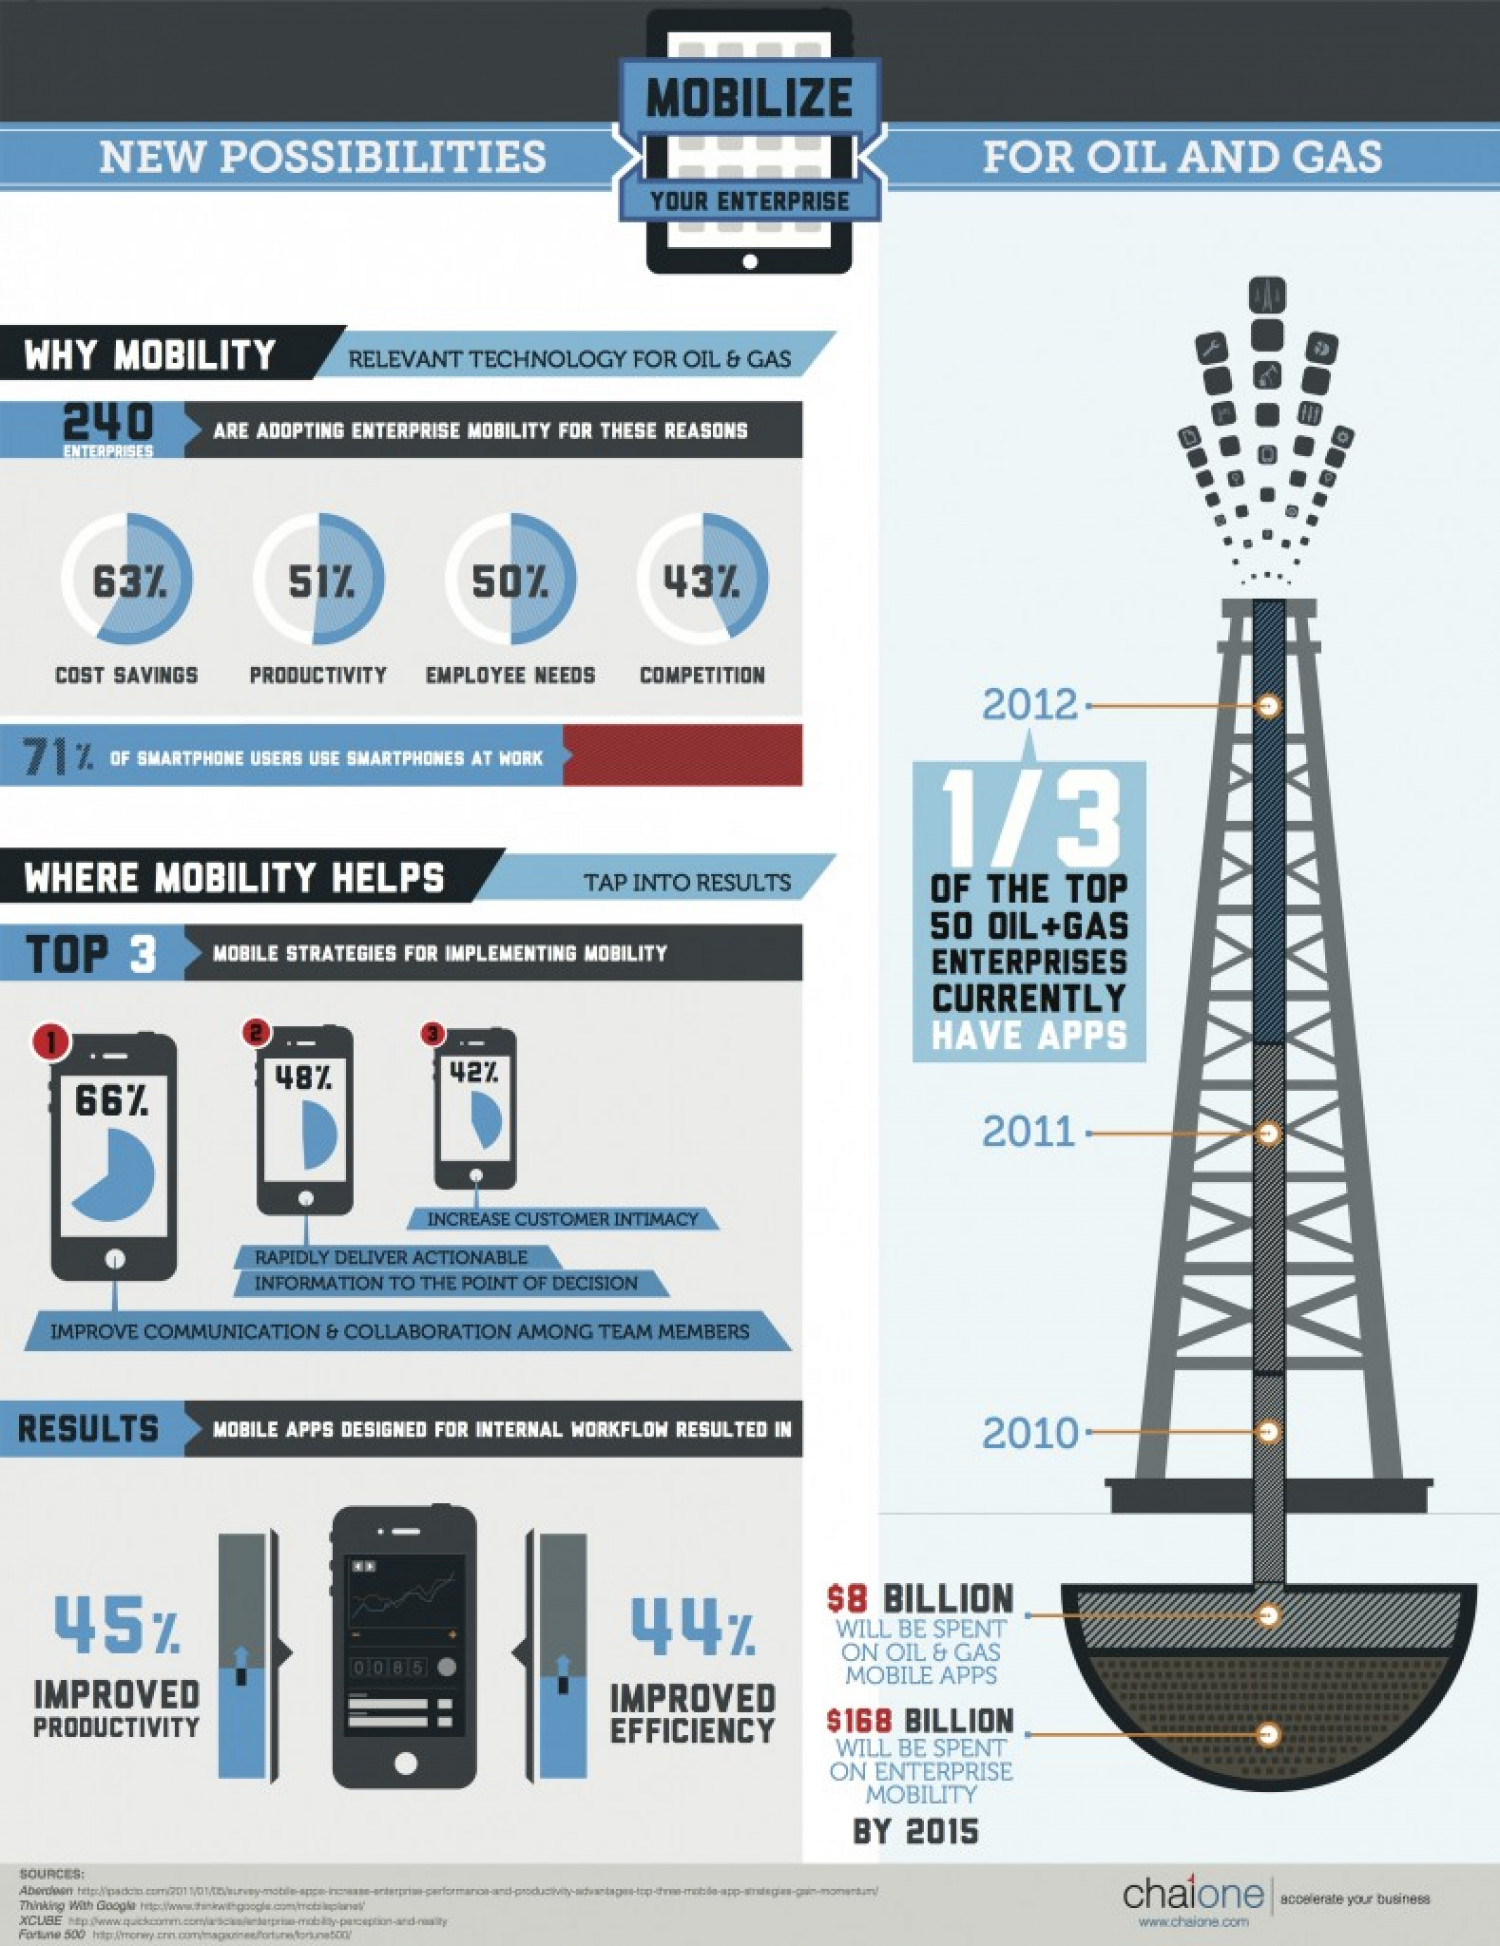 Mobilize the Oil & Gas Enterprise Infographic